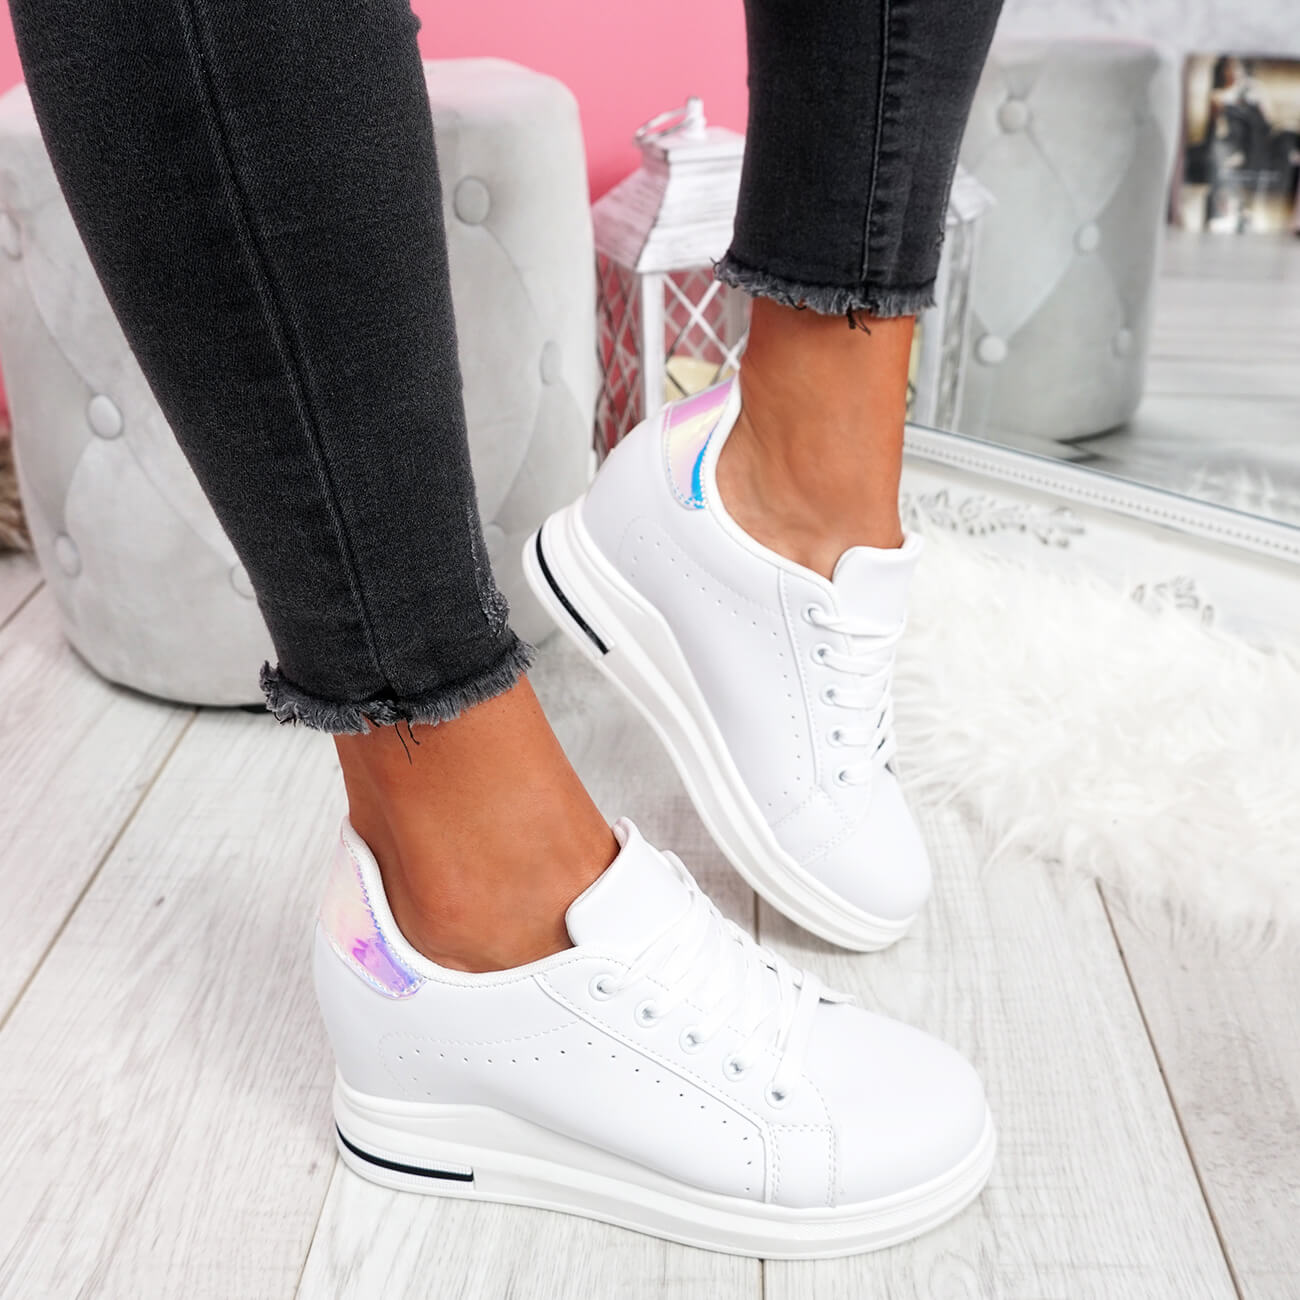 WOMENS-LADIES-LACE-UP-WEDGE-TRAINERS-HEEL-SNEAKERS-SHINY-PARTY-WOMEN-SHOES thumbnail 13